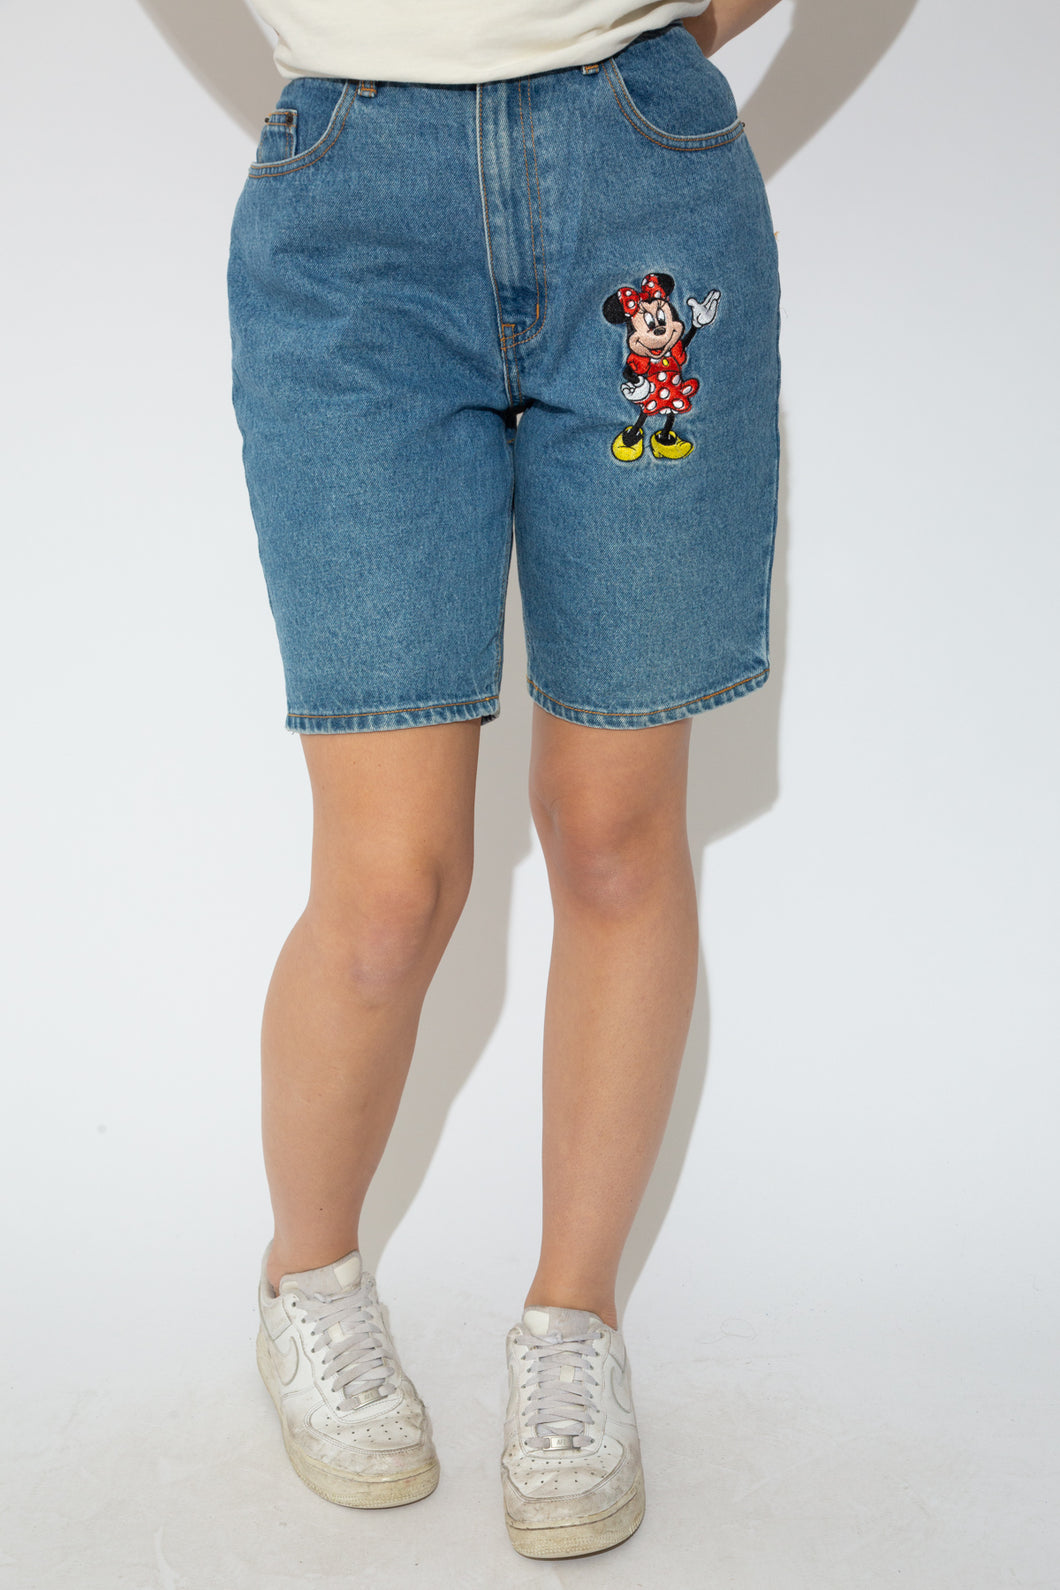 Model wearing mickey shorts, magichollow